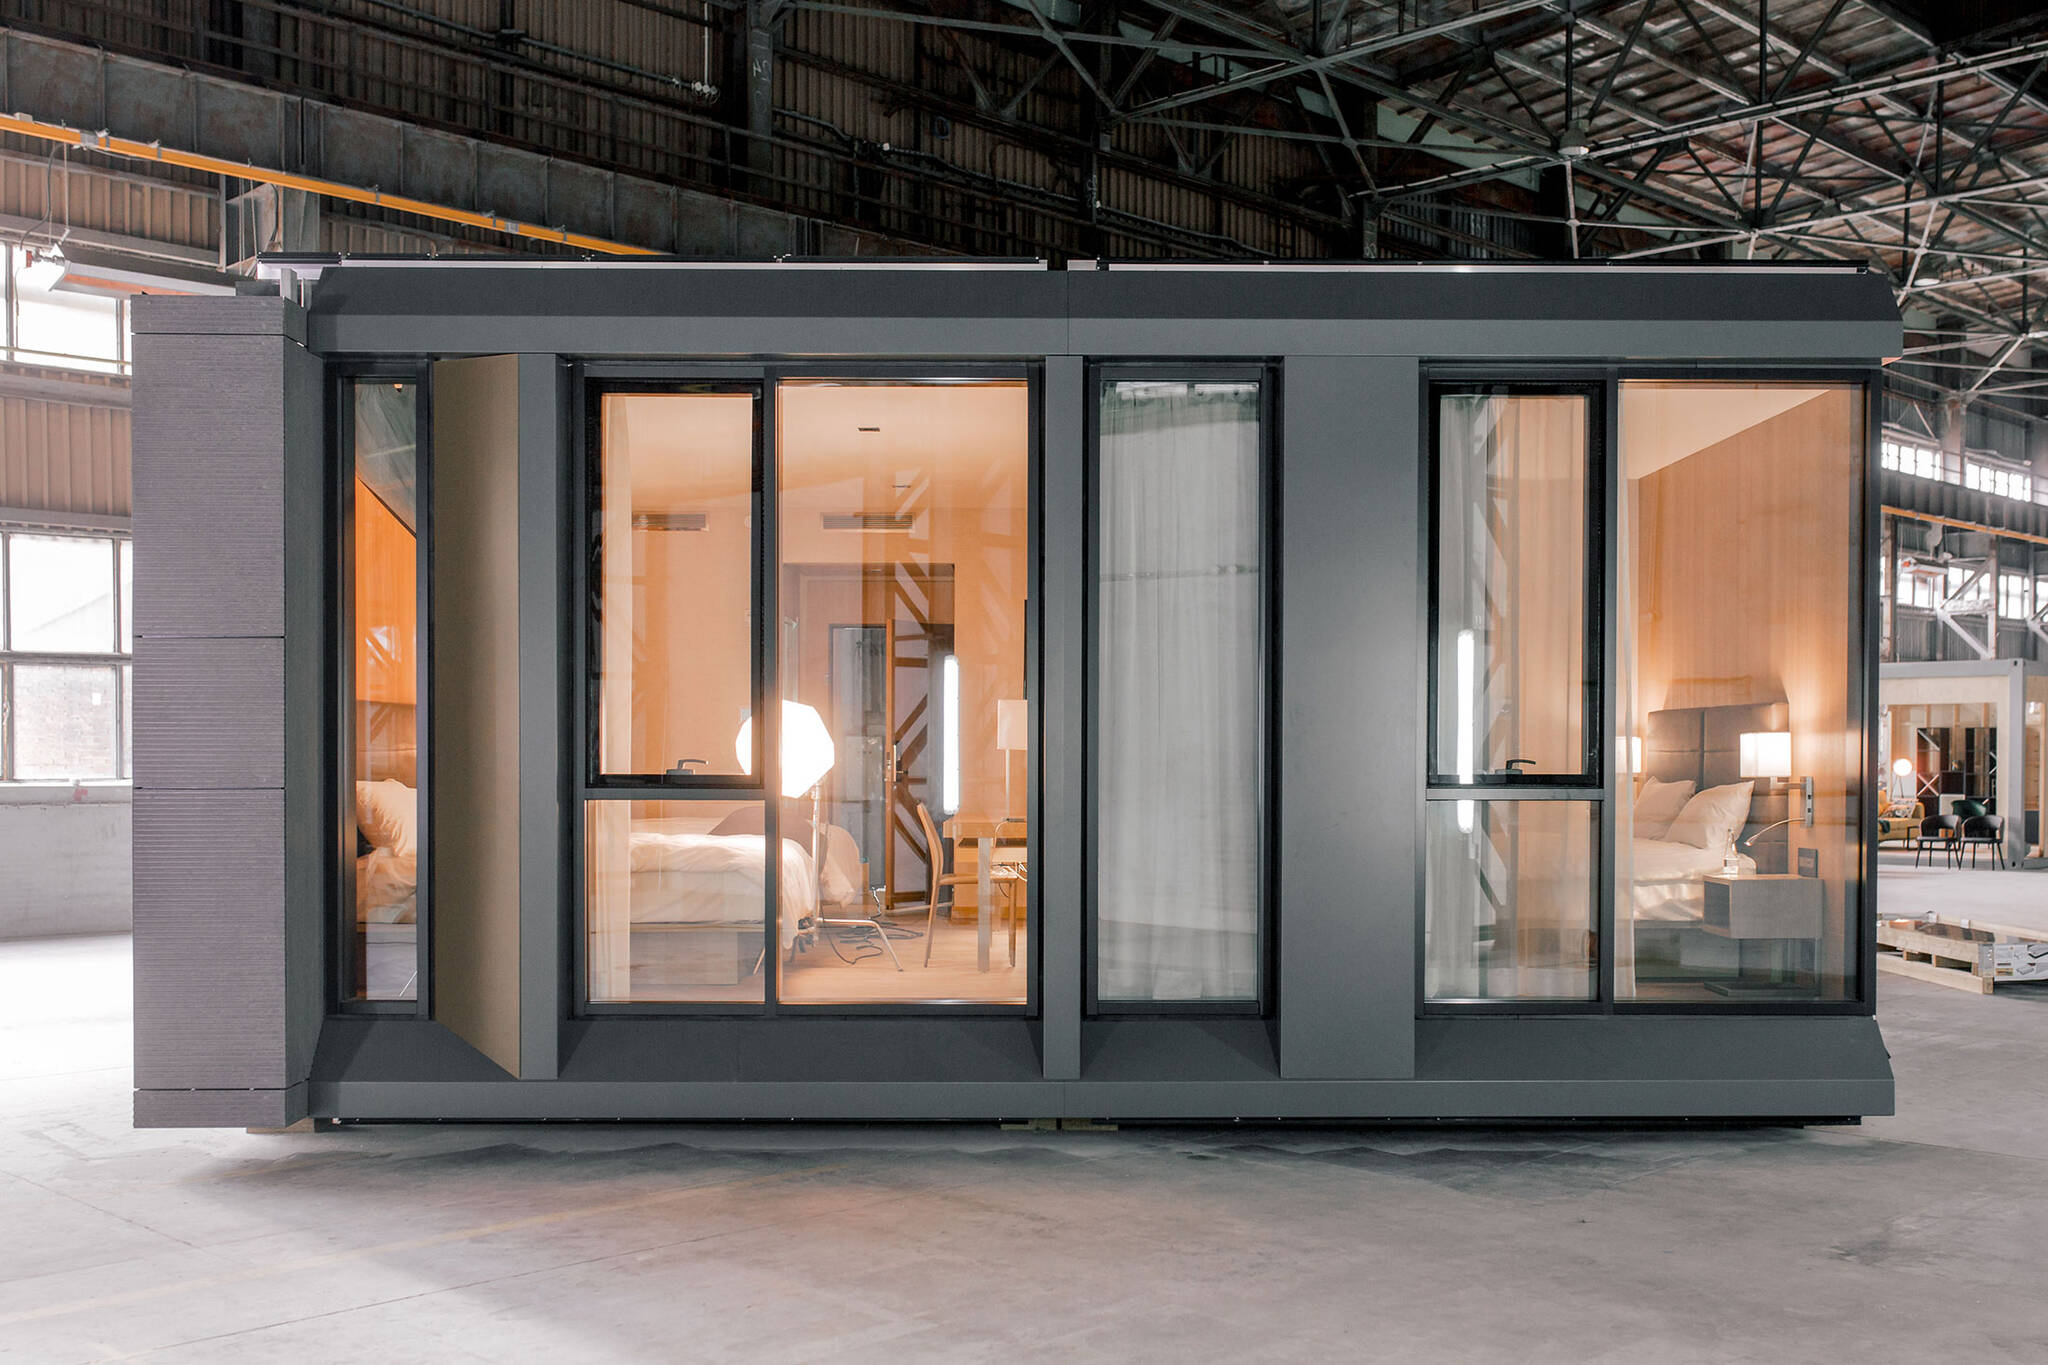 Fully furnished assembled guestroom module of the AC Hotel project located at 842 Sixth Avenue in NoMad, New York City designed by the architecture studio Danny Forster & Architecture